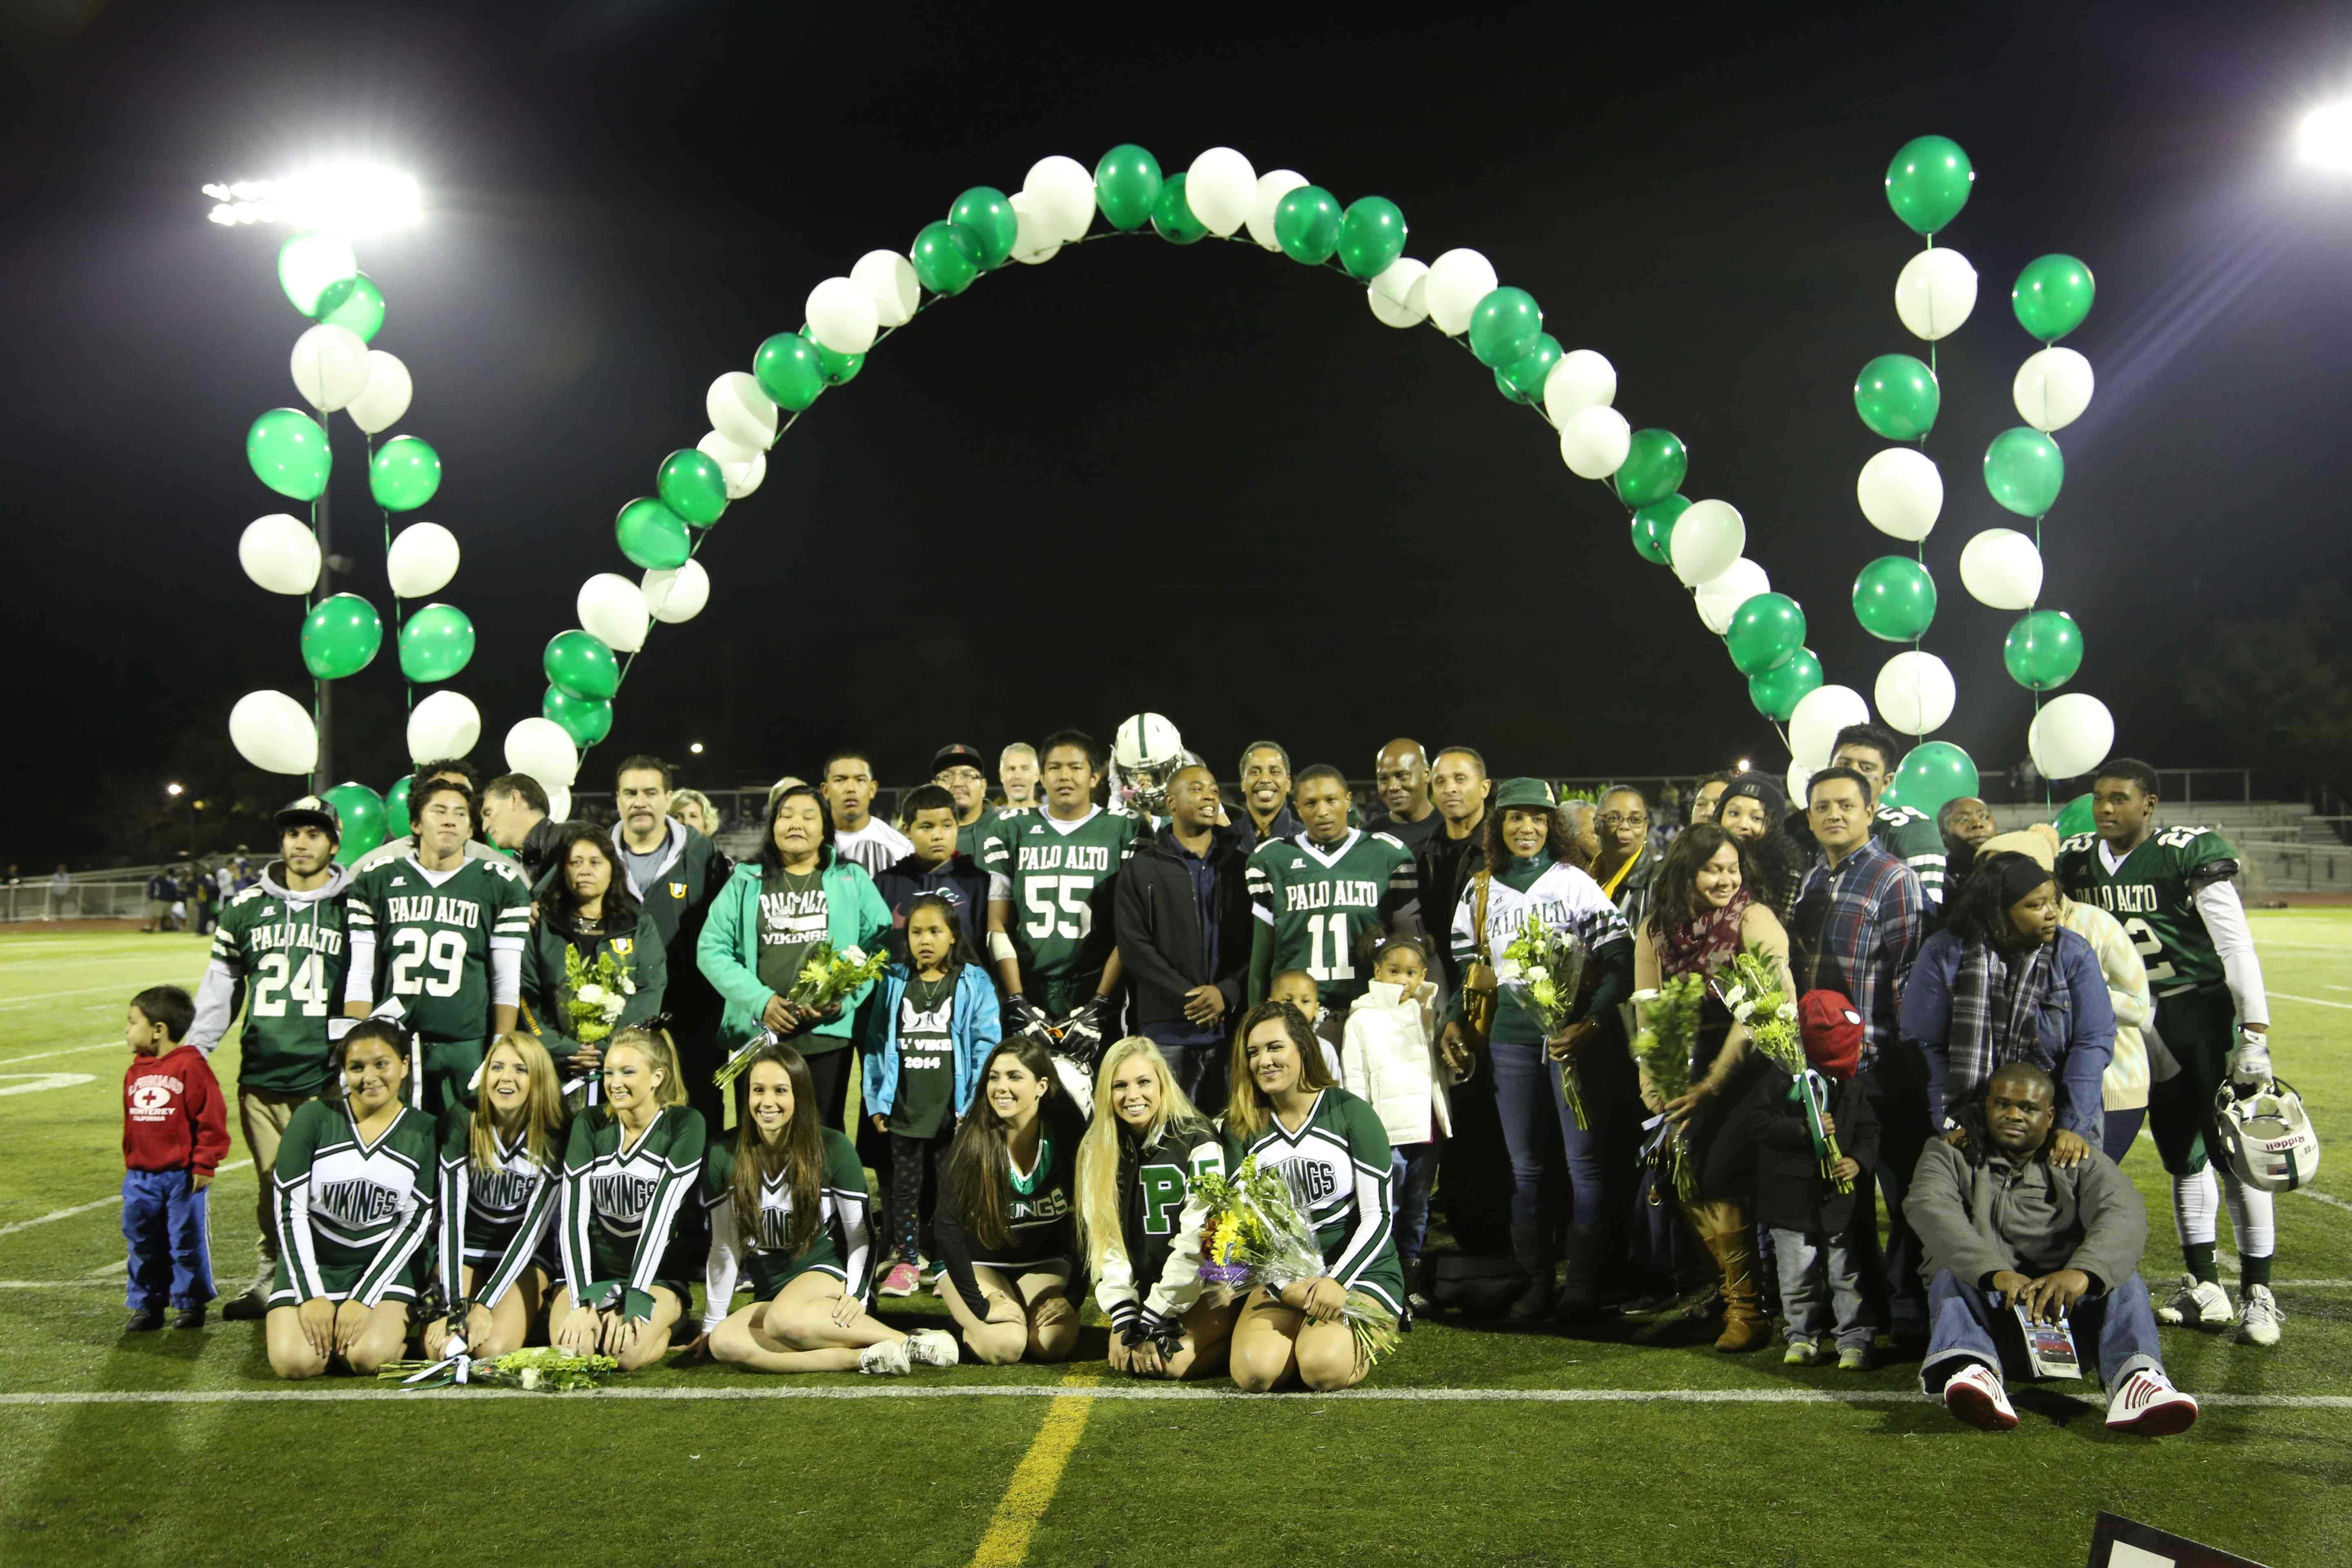 The six senior football players, six cheer and dance seniors, and their families pose for pictures in honor of their four years of commitment to Paly.